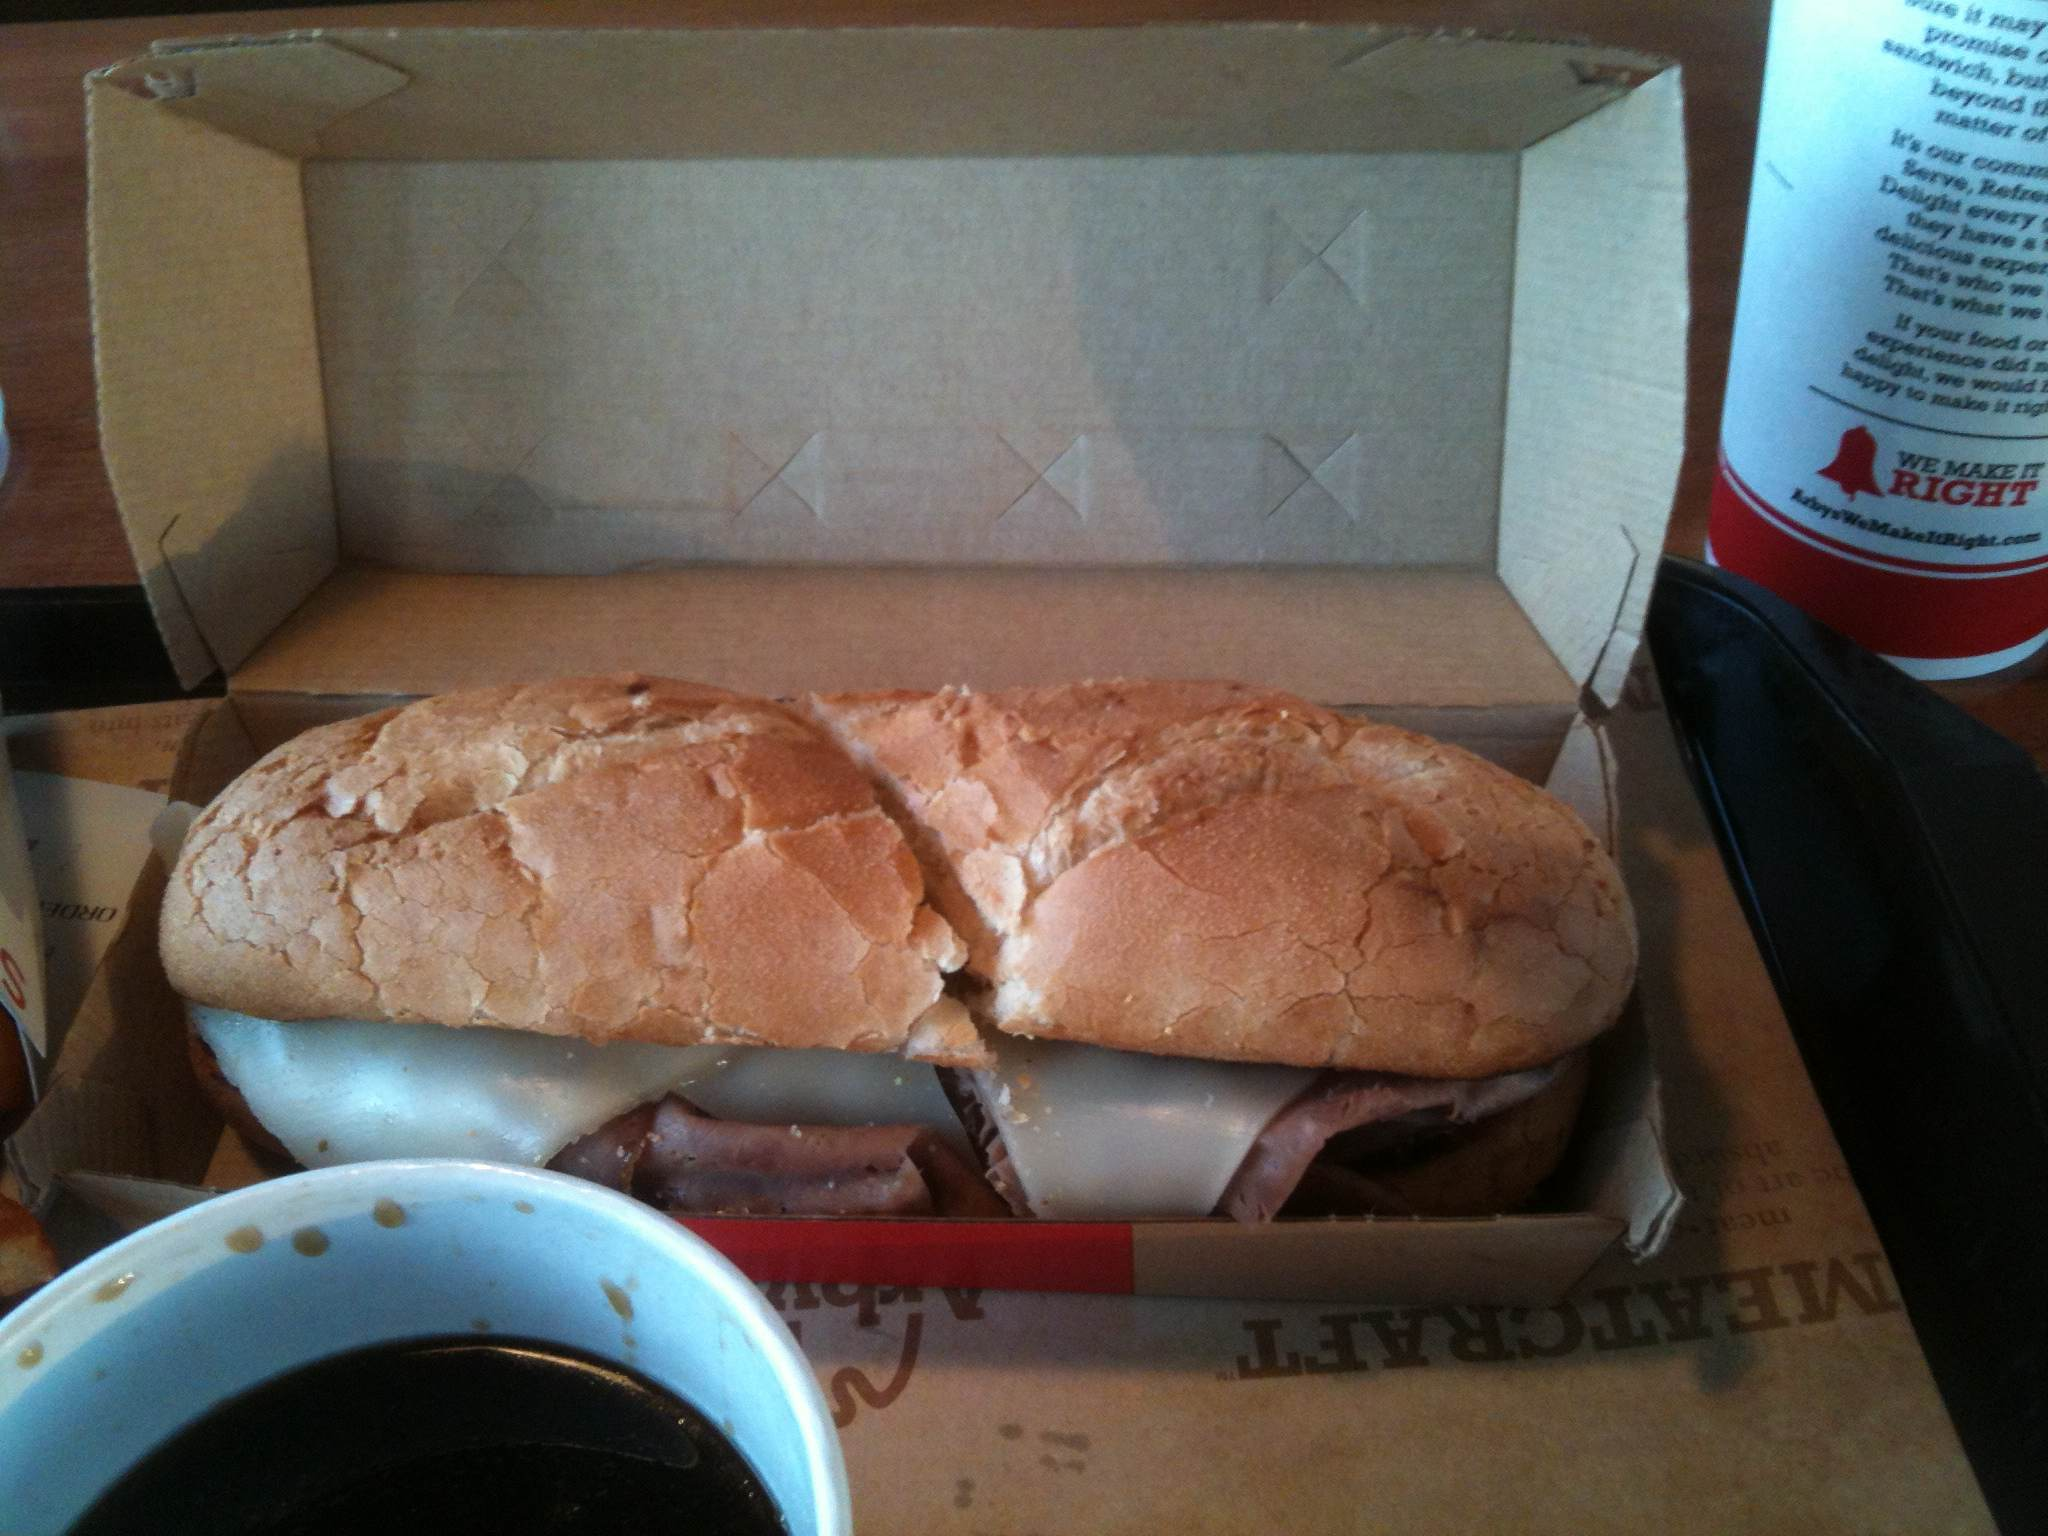 French dip, fast-food style